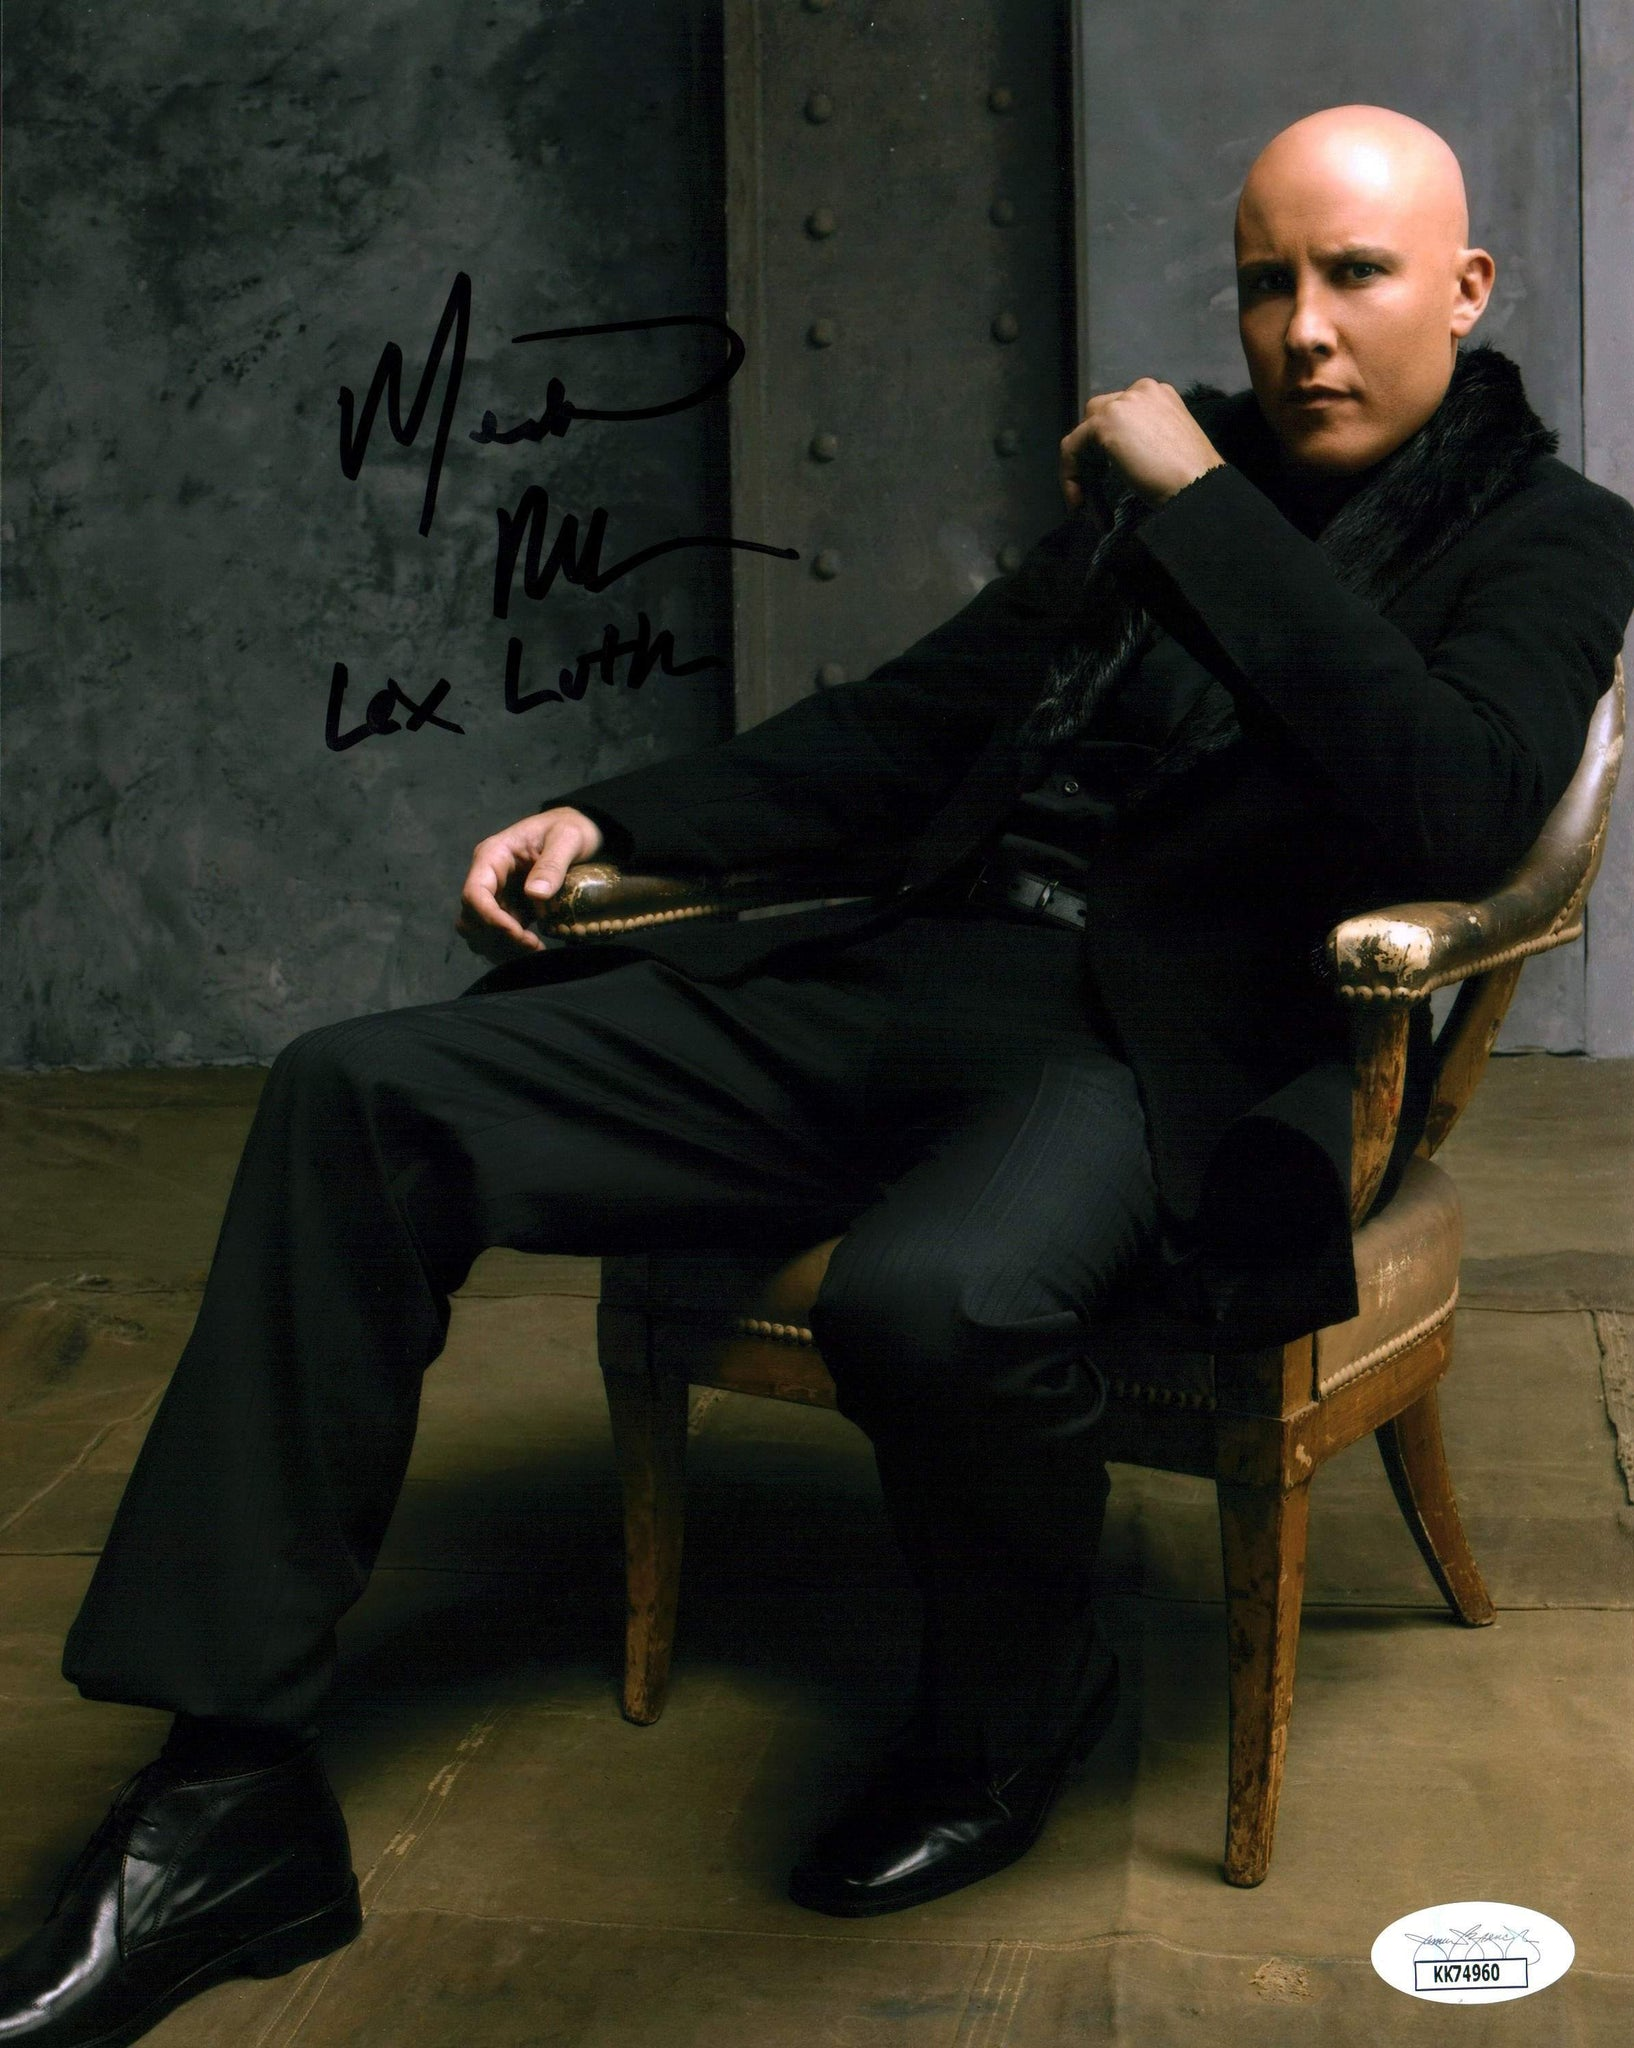 Michael Rosenbaum Smallville 8x10 Photo Signed Autograph JSA Certified COA Auto GalaxyCon